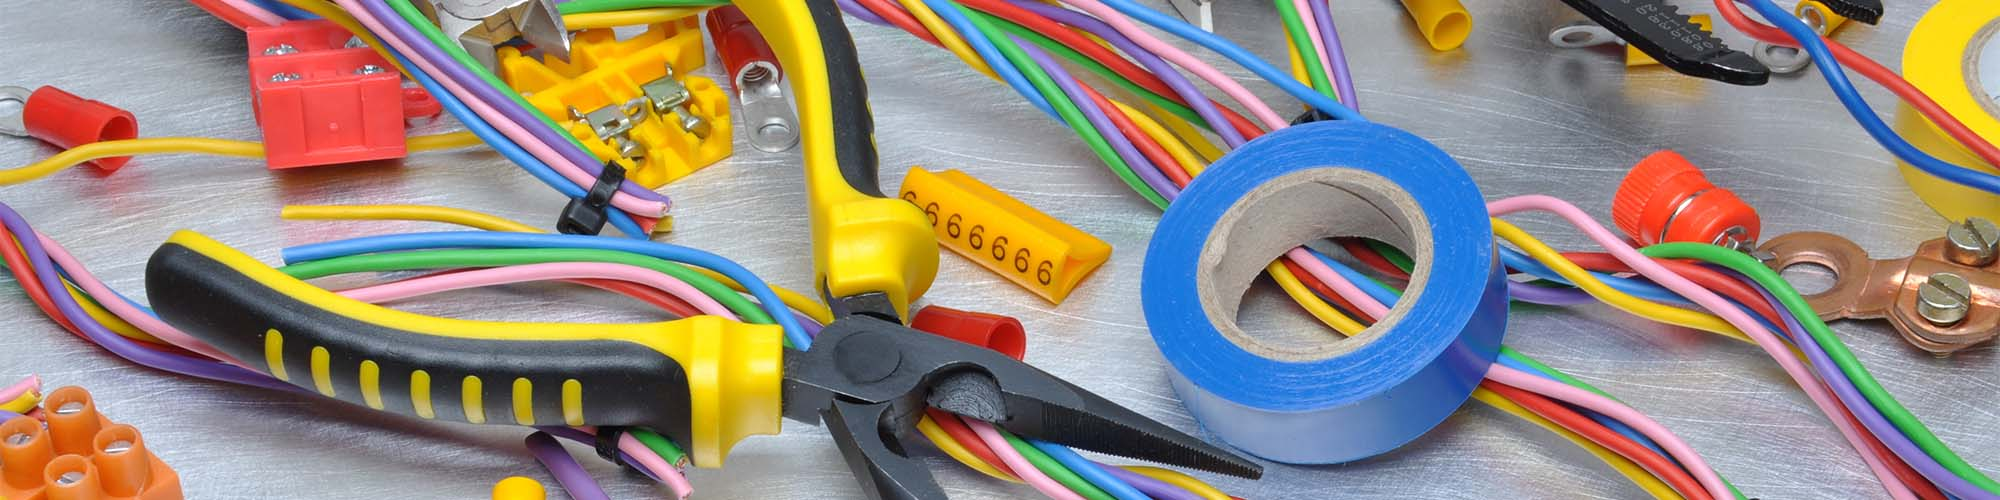 Electrical Tools and Supplies